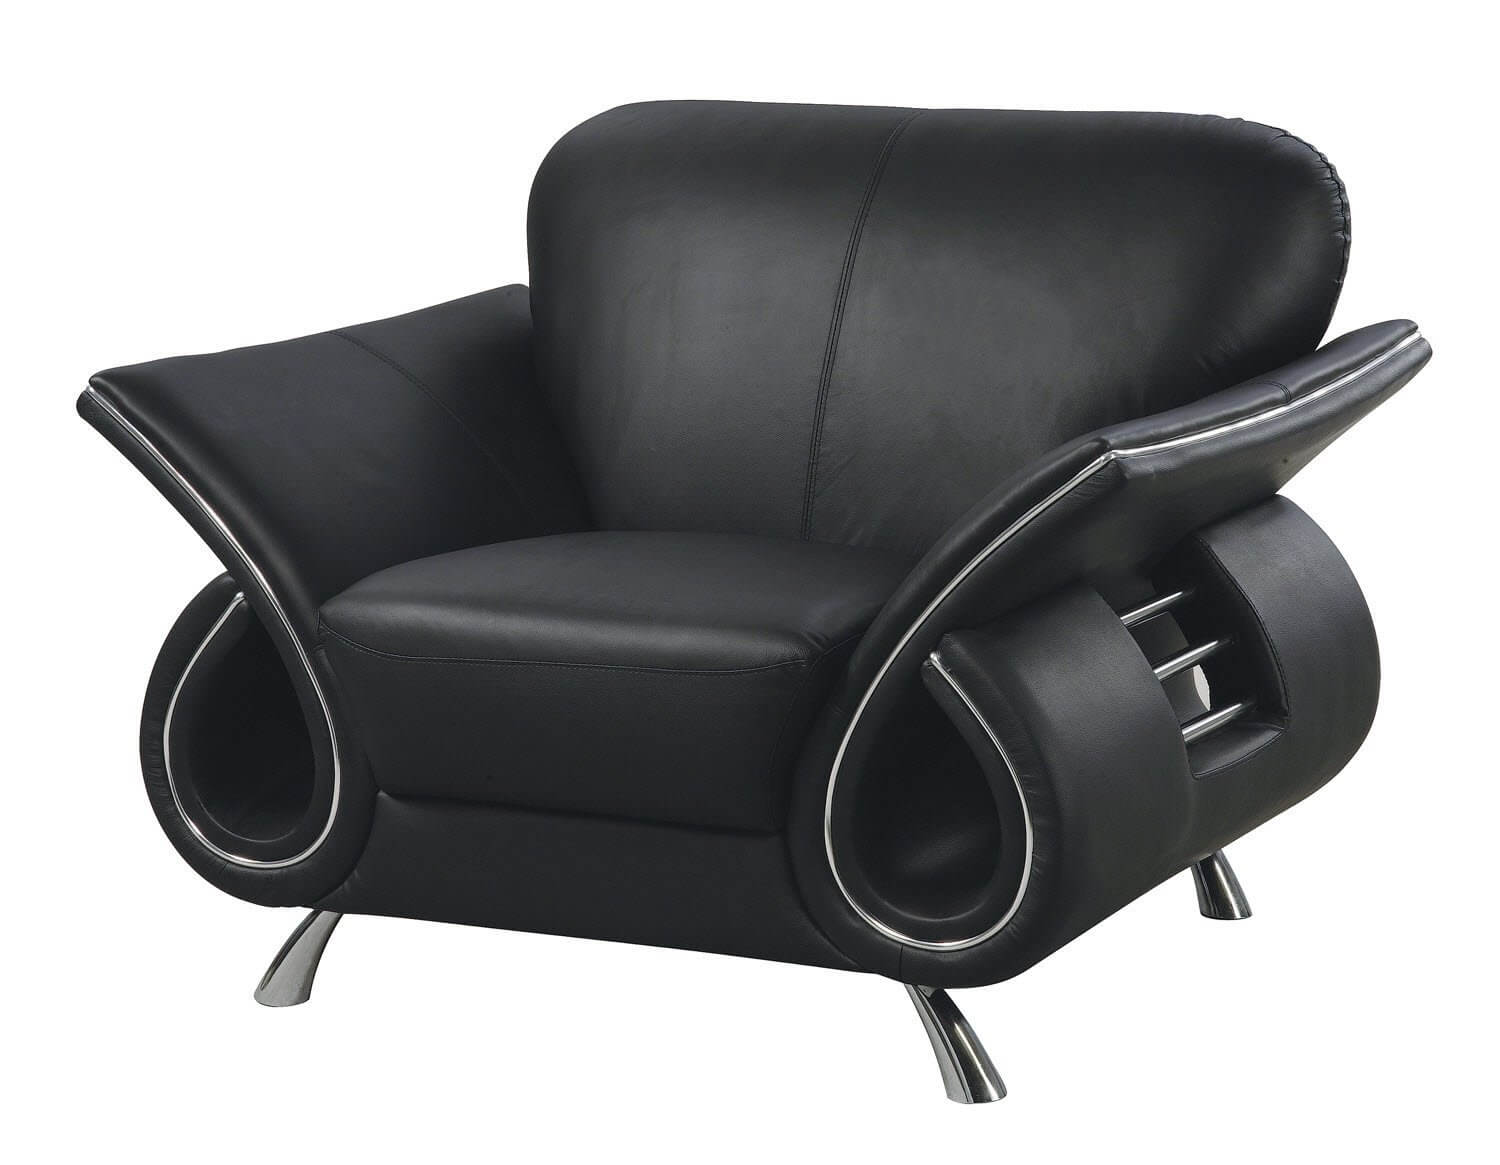 Home gt gt living room gt gt accent seating gt gt modern leather swivel chair - Home Gt Gt Living Room Gt Gt Accent Seating Gt Gt Modern Leather Swivel Chair 59